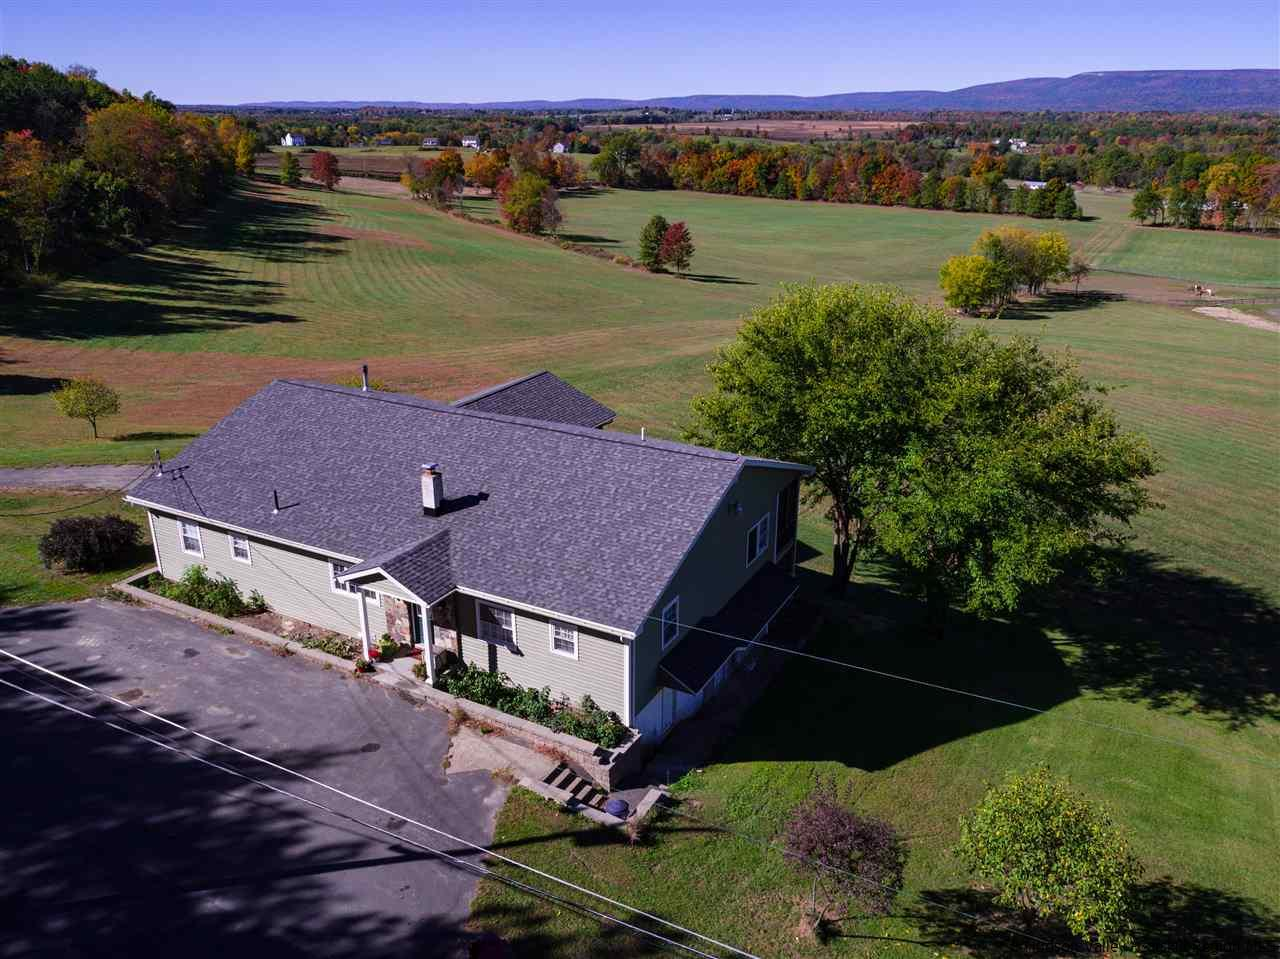 Single Family Home for Sale at 814 Sand Hill Road 814 Sand Hill Road Gardiner, New York 12525 United States